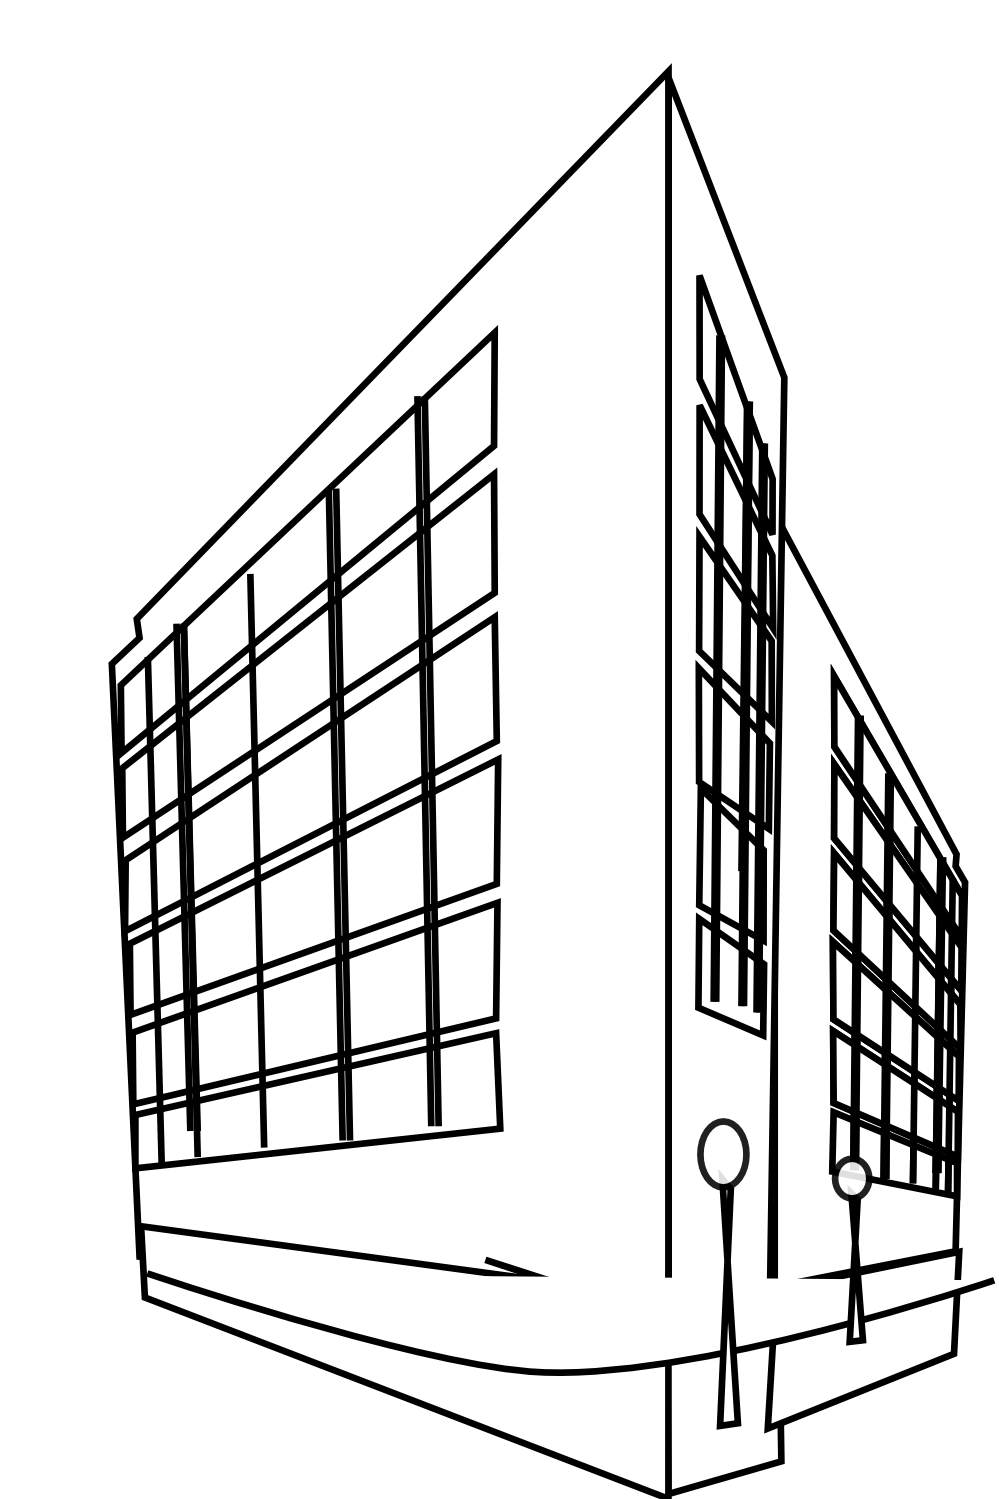 Clipart black and white school png black and white download Building Clipart Black And White & Building Black And White Clip ... png black and white download